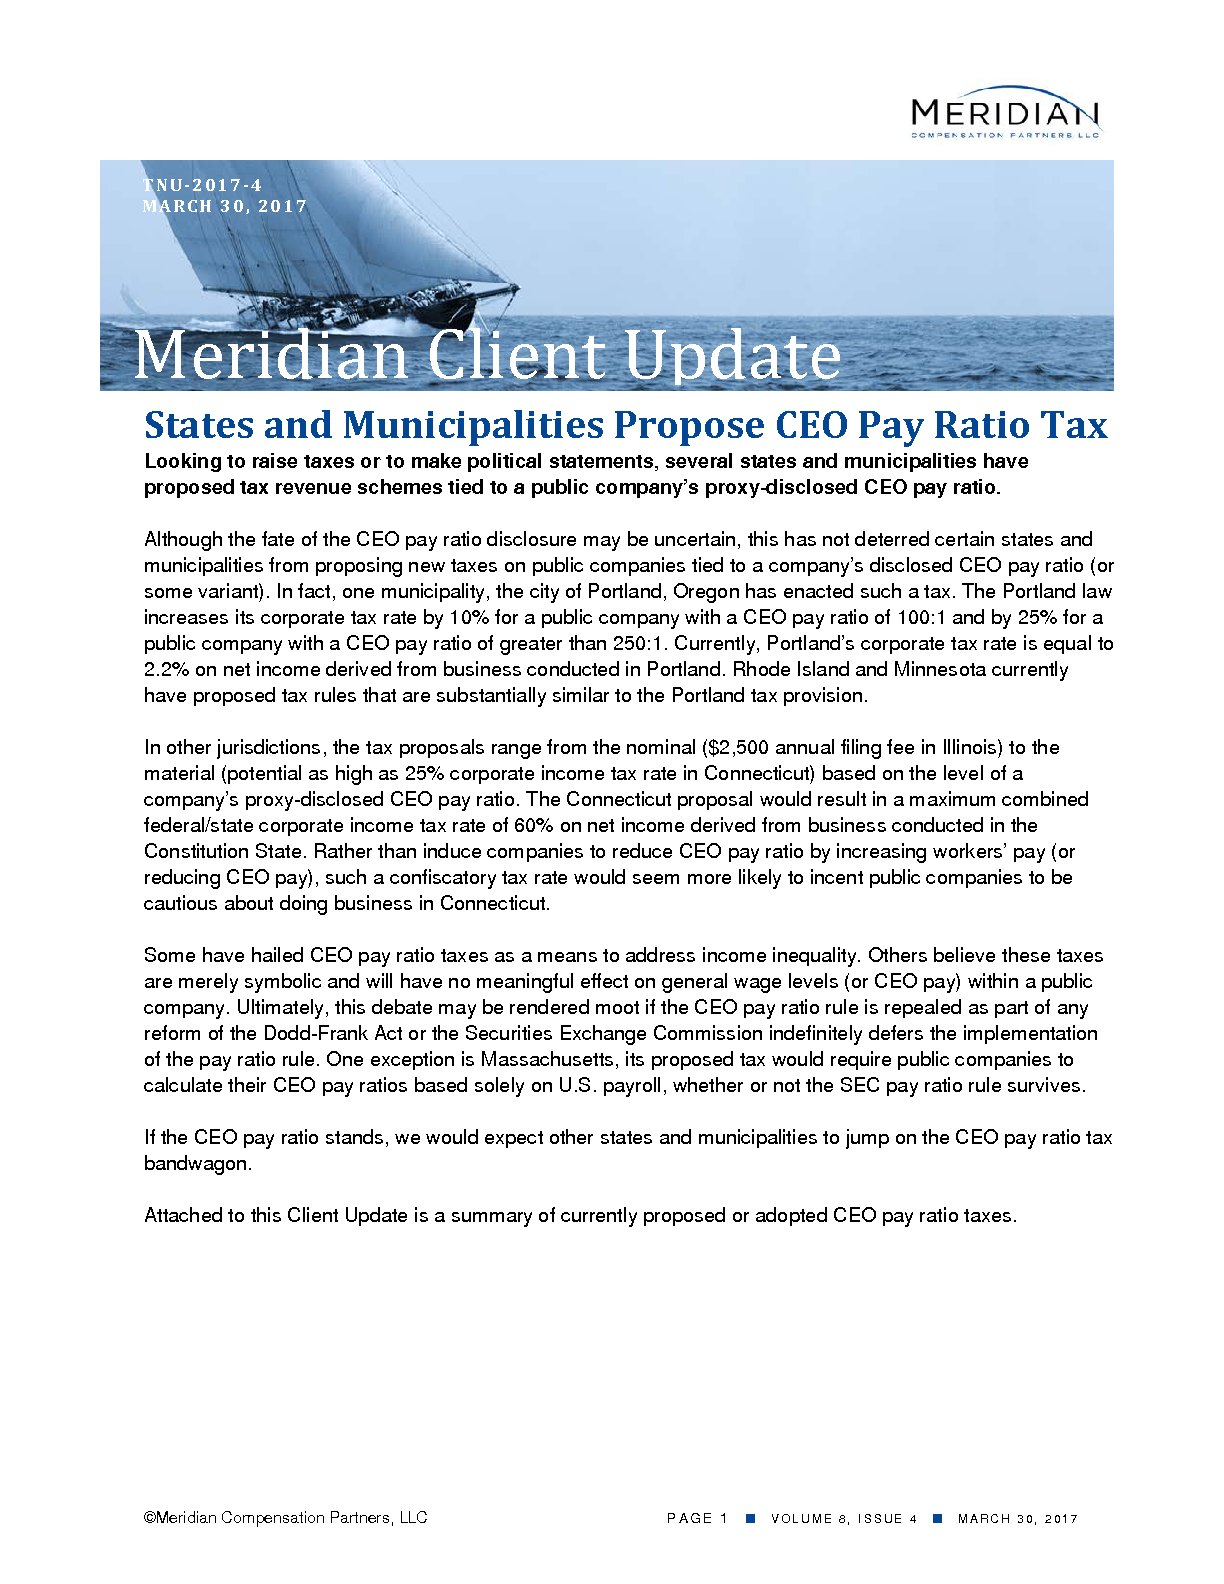 States and Municipalities Propose CEO Pay Ratio Tax (PDF)